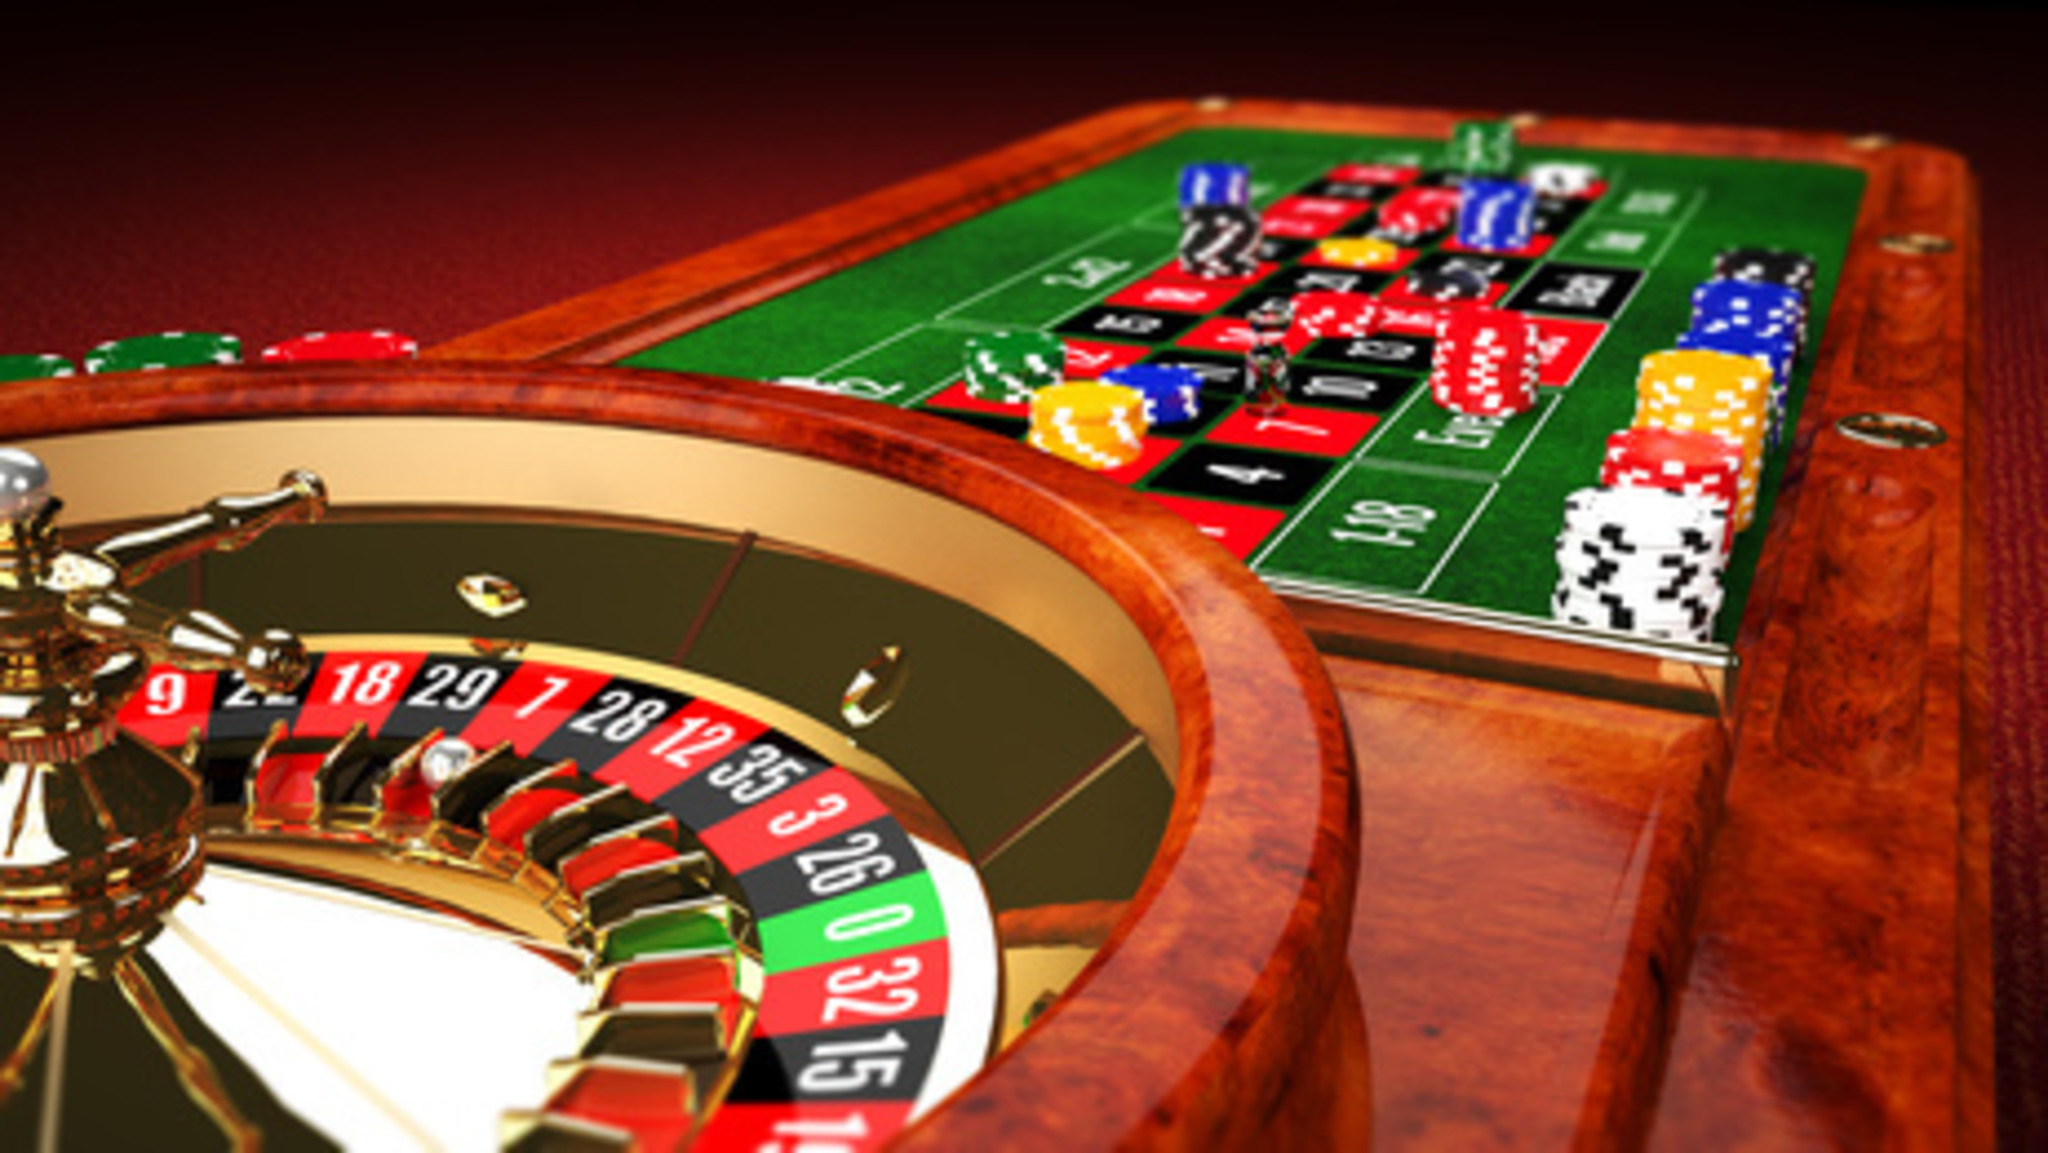 Odds Of Roulette On Line Understand The Odds At The Betting Site